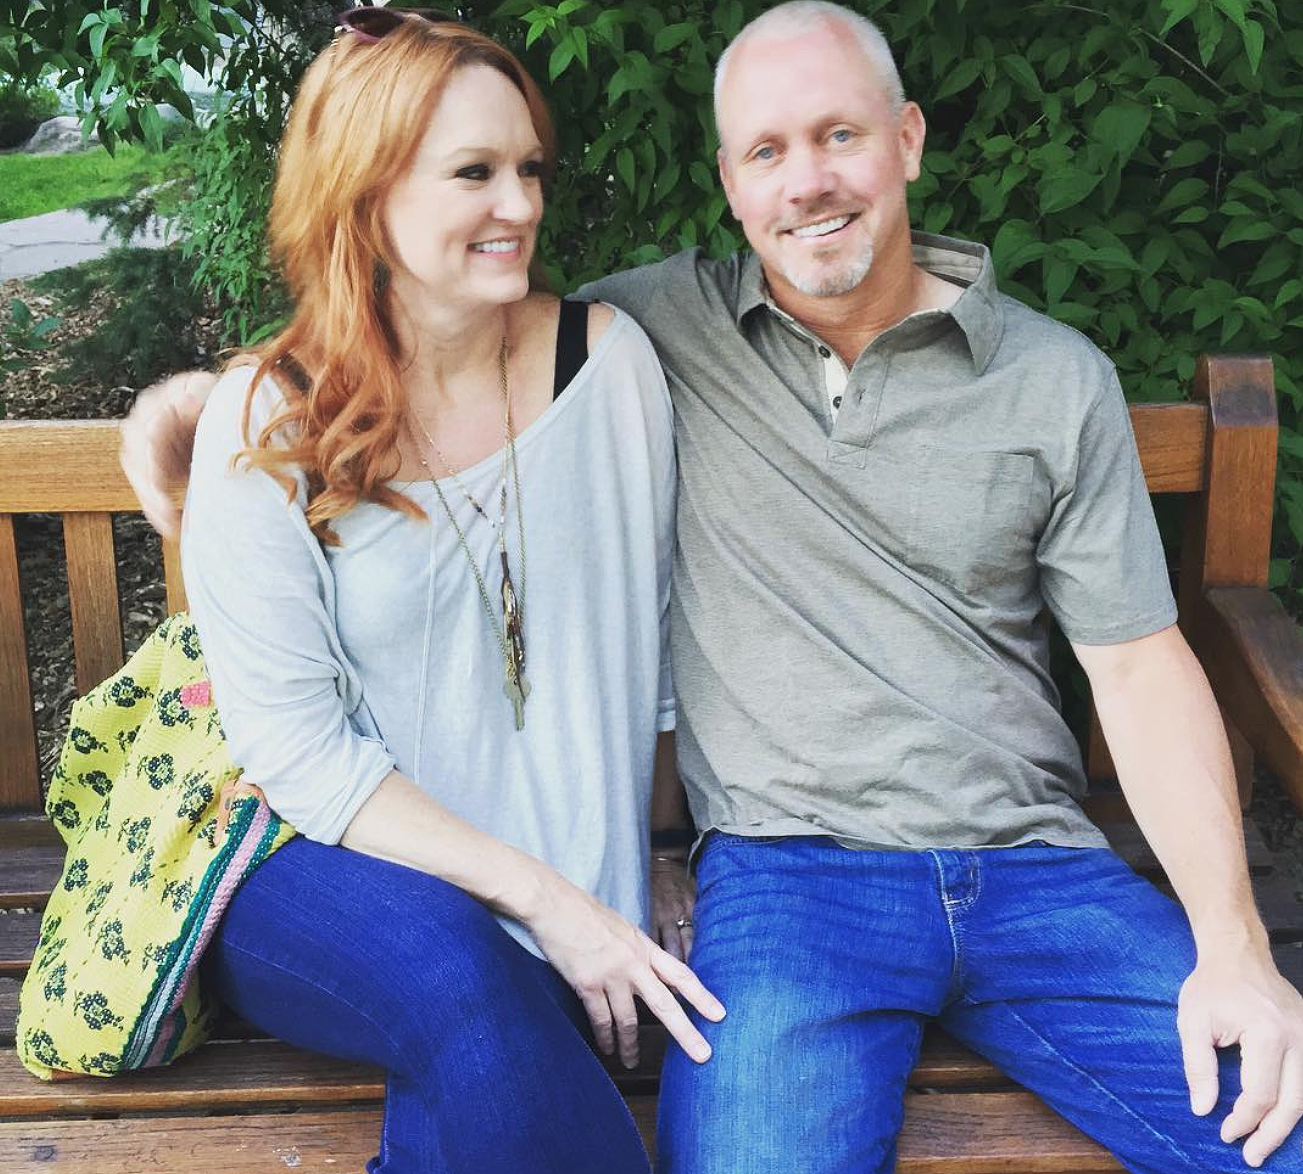 Ree Drummond Says She Cried While Watching Last Week's Emotional Episode of Pioneer Woman